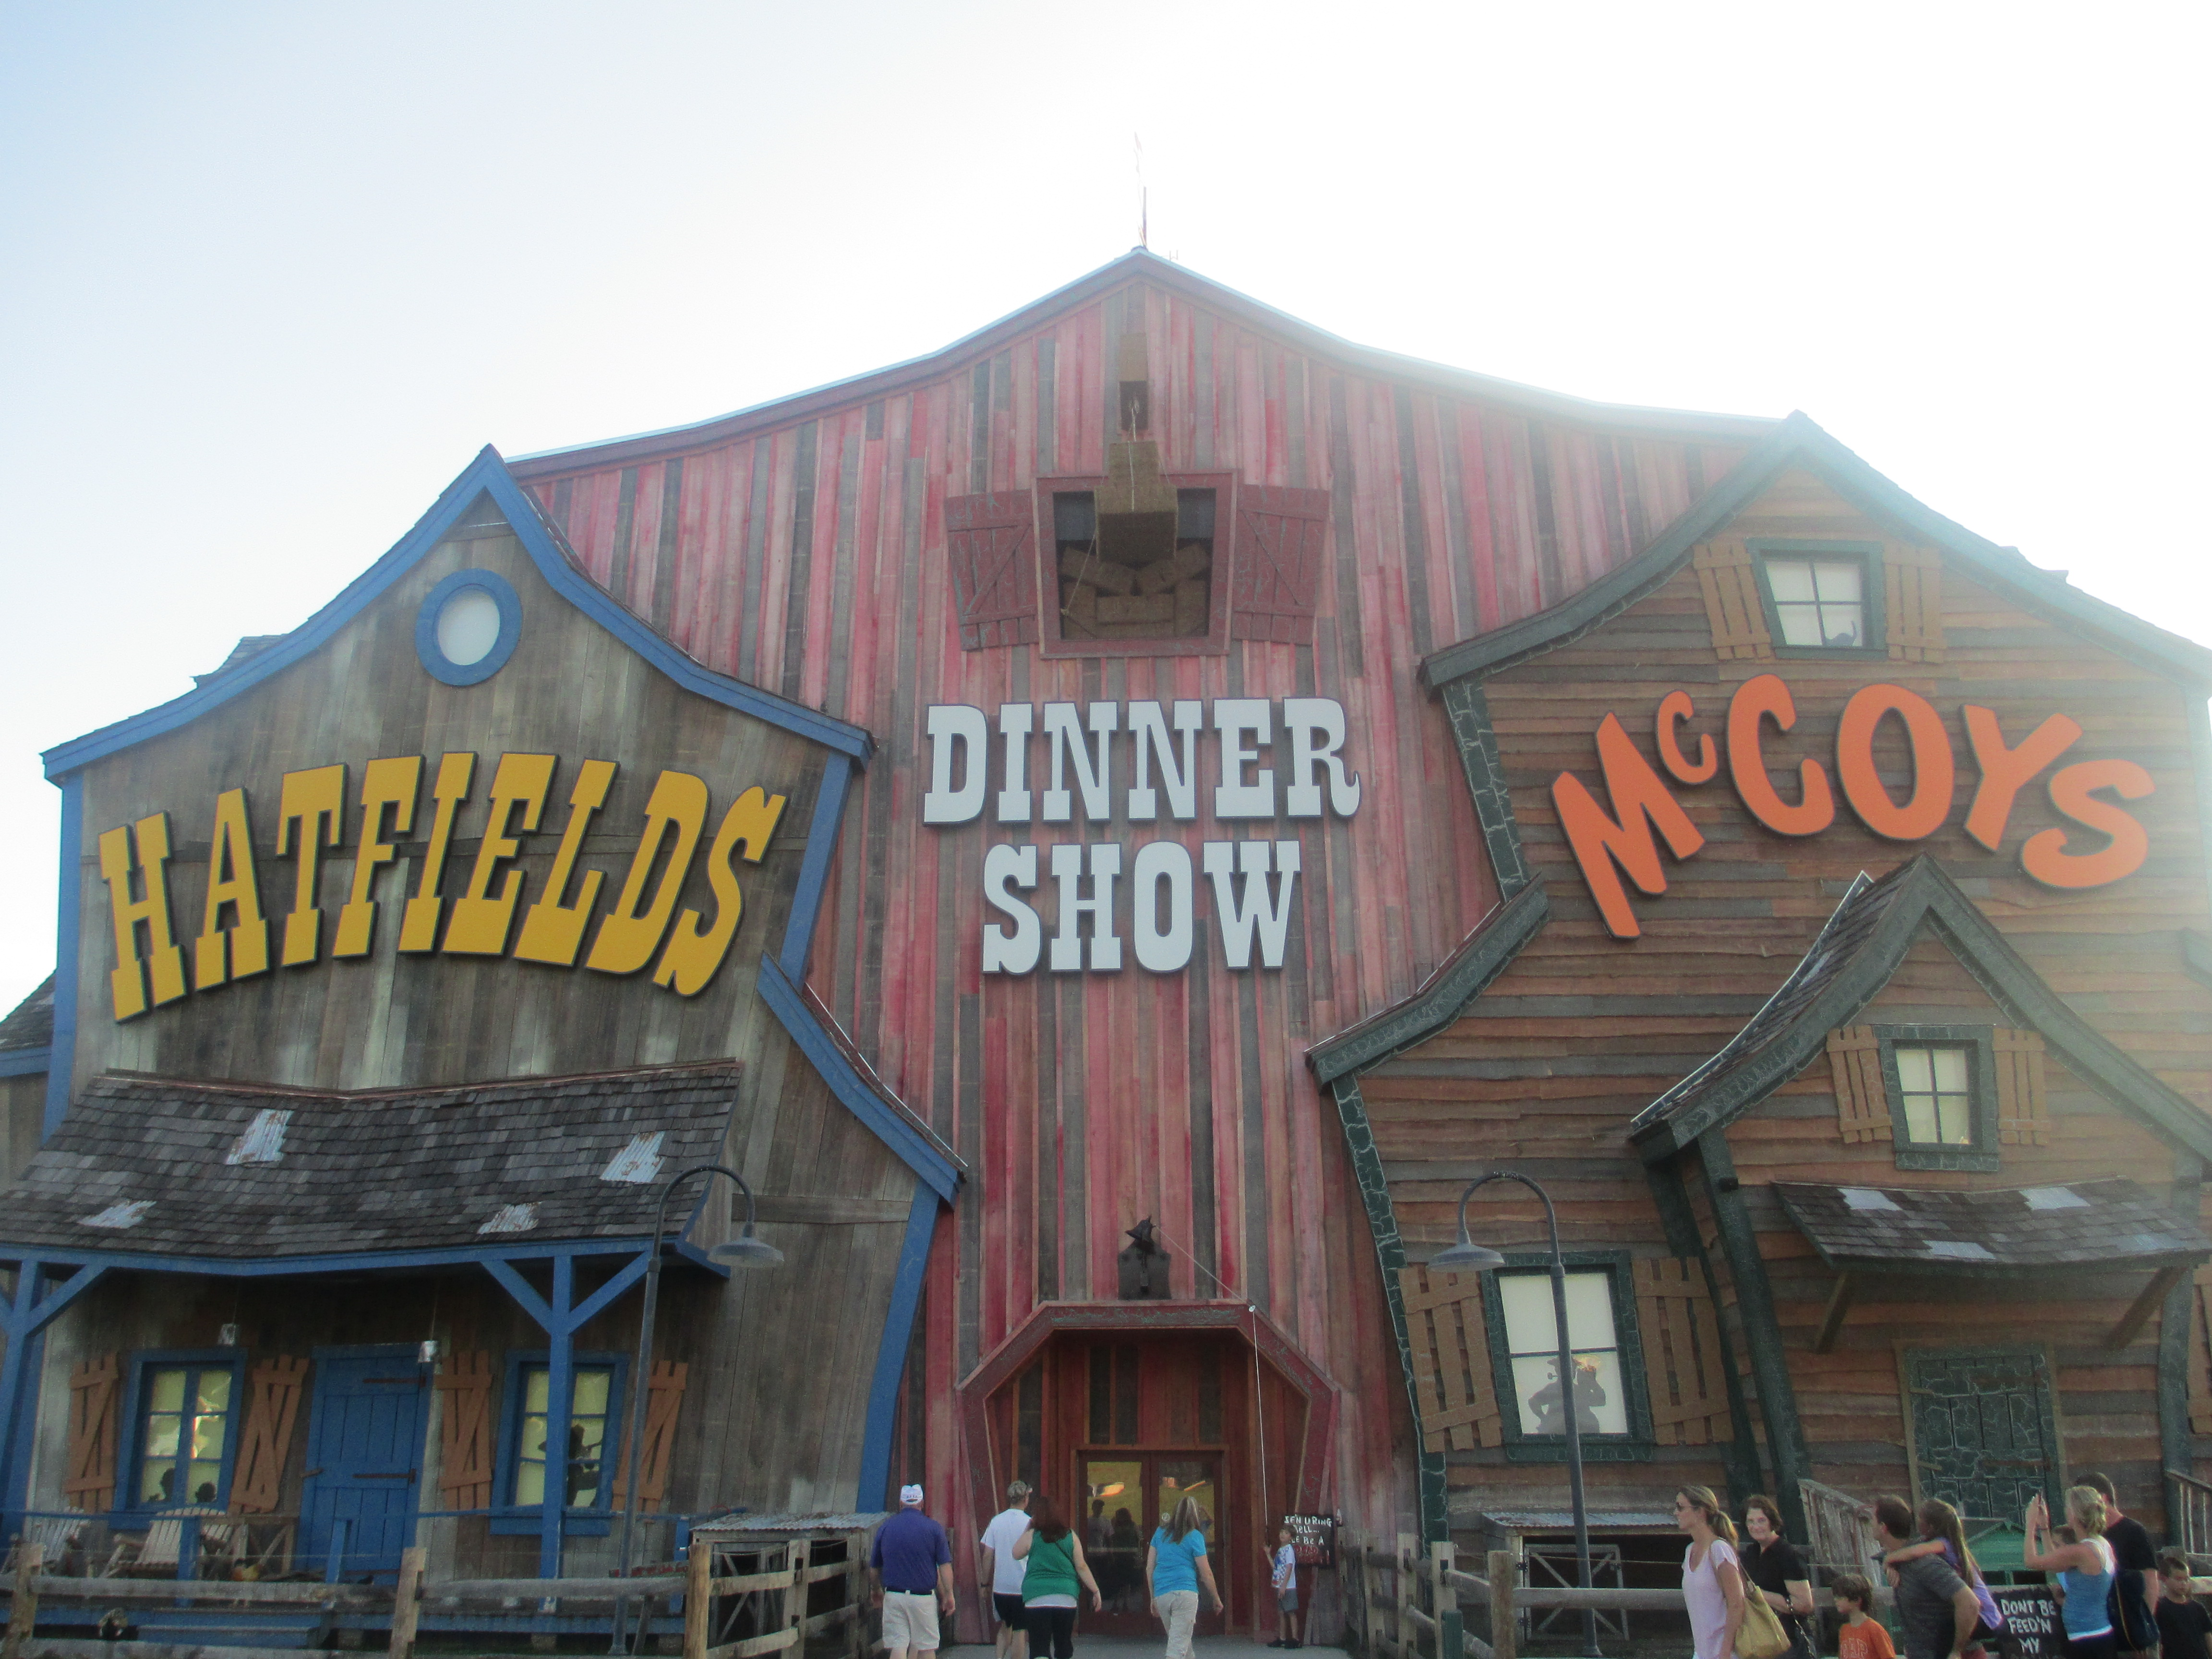 File:Hatfield & McCoy Dinner Show, Pigeon Forge, TN IMG 5042.JPG